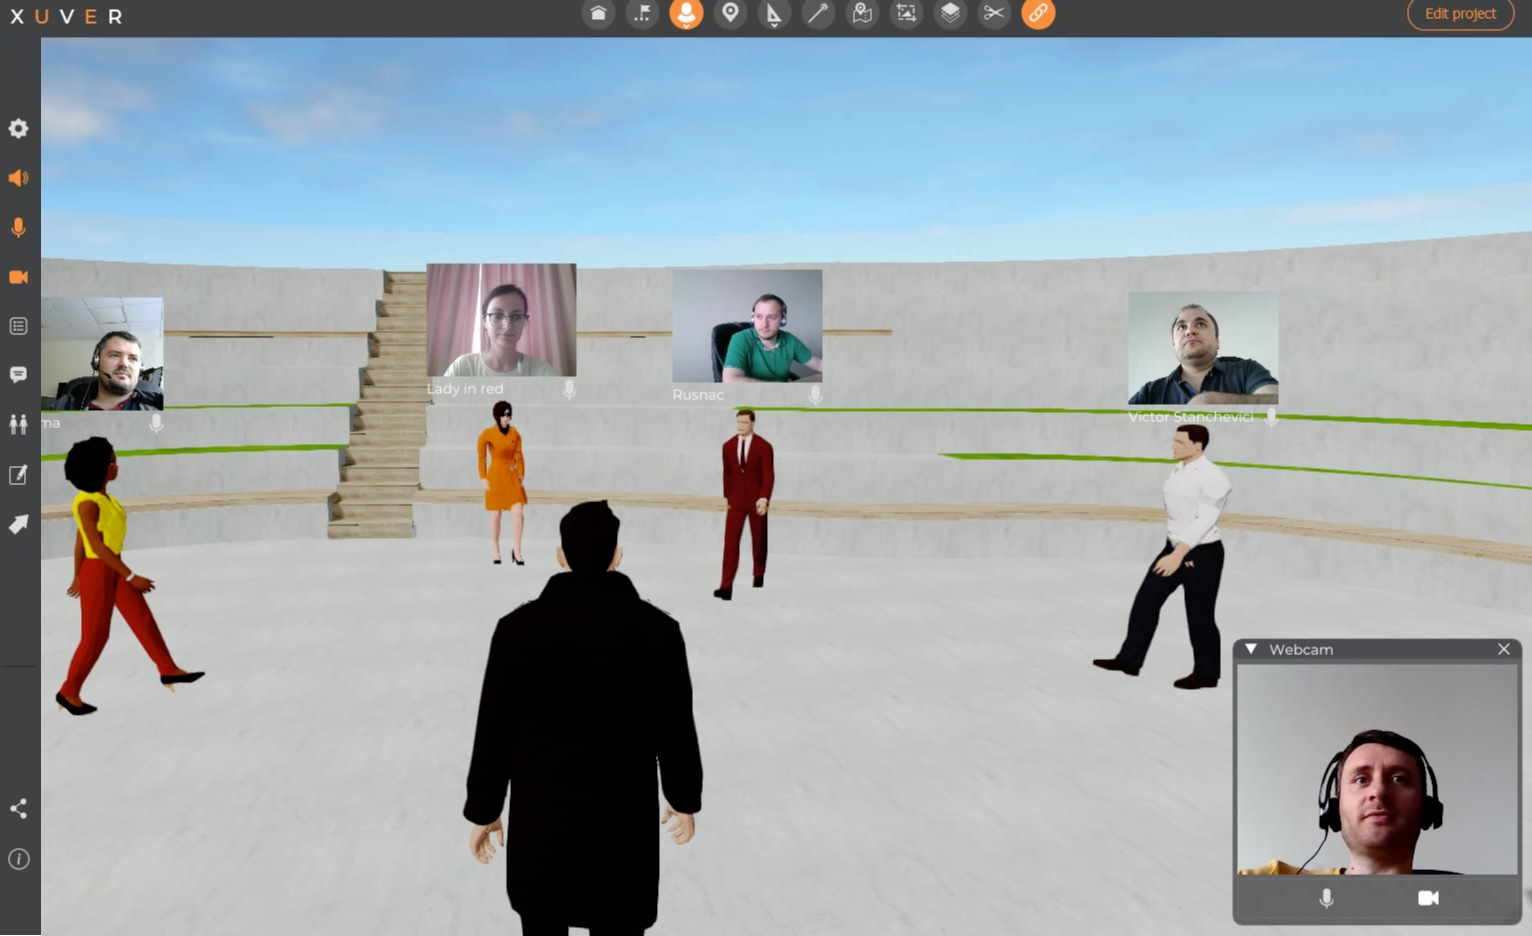 Let your next virtual meeting take place in an inspiring meeting space